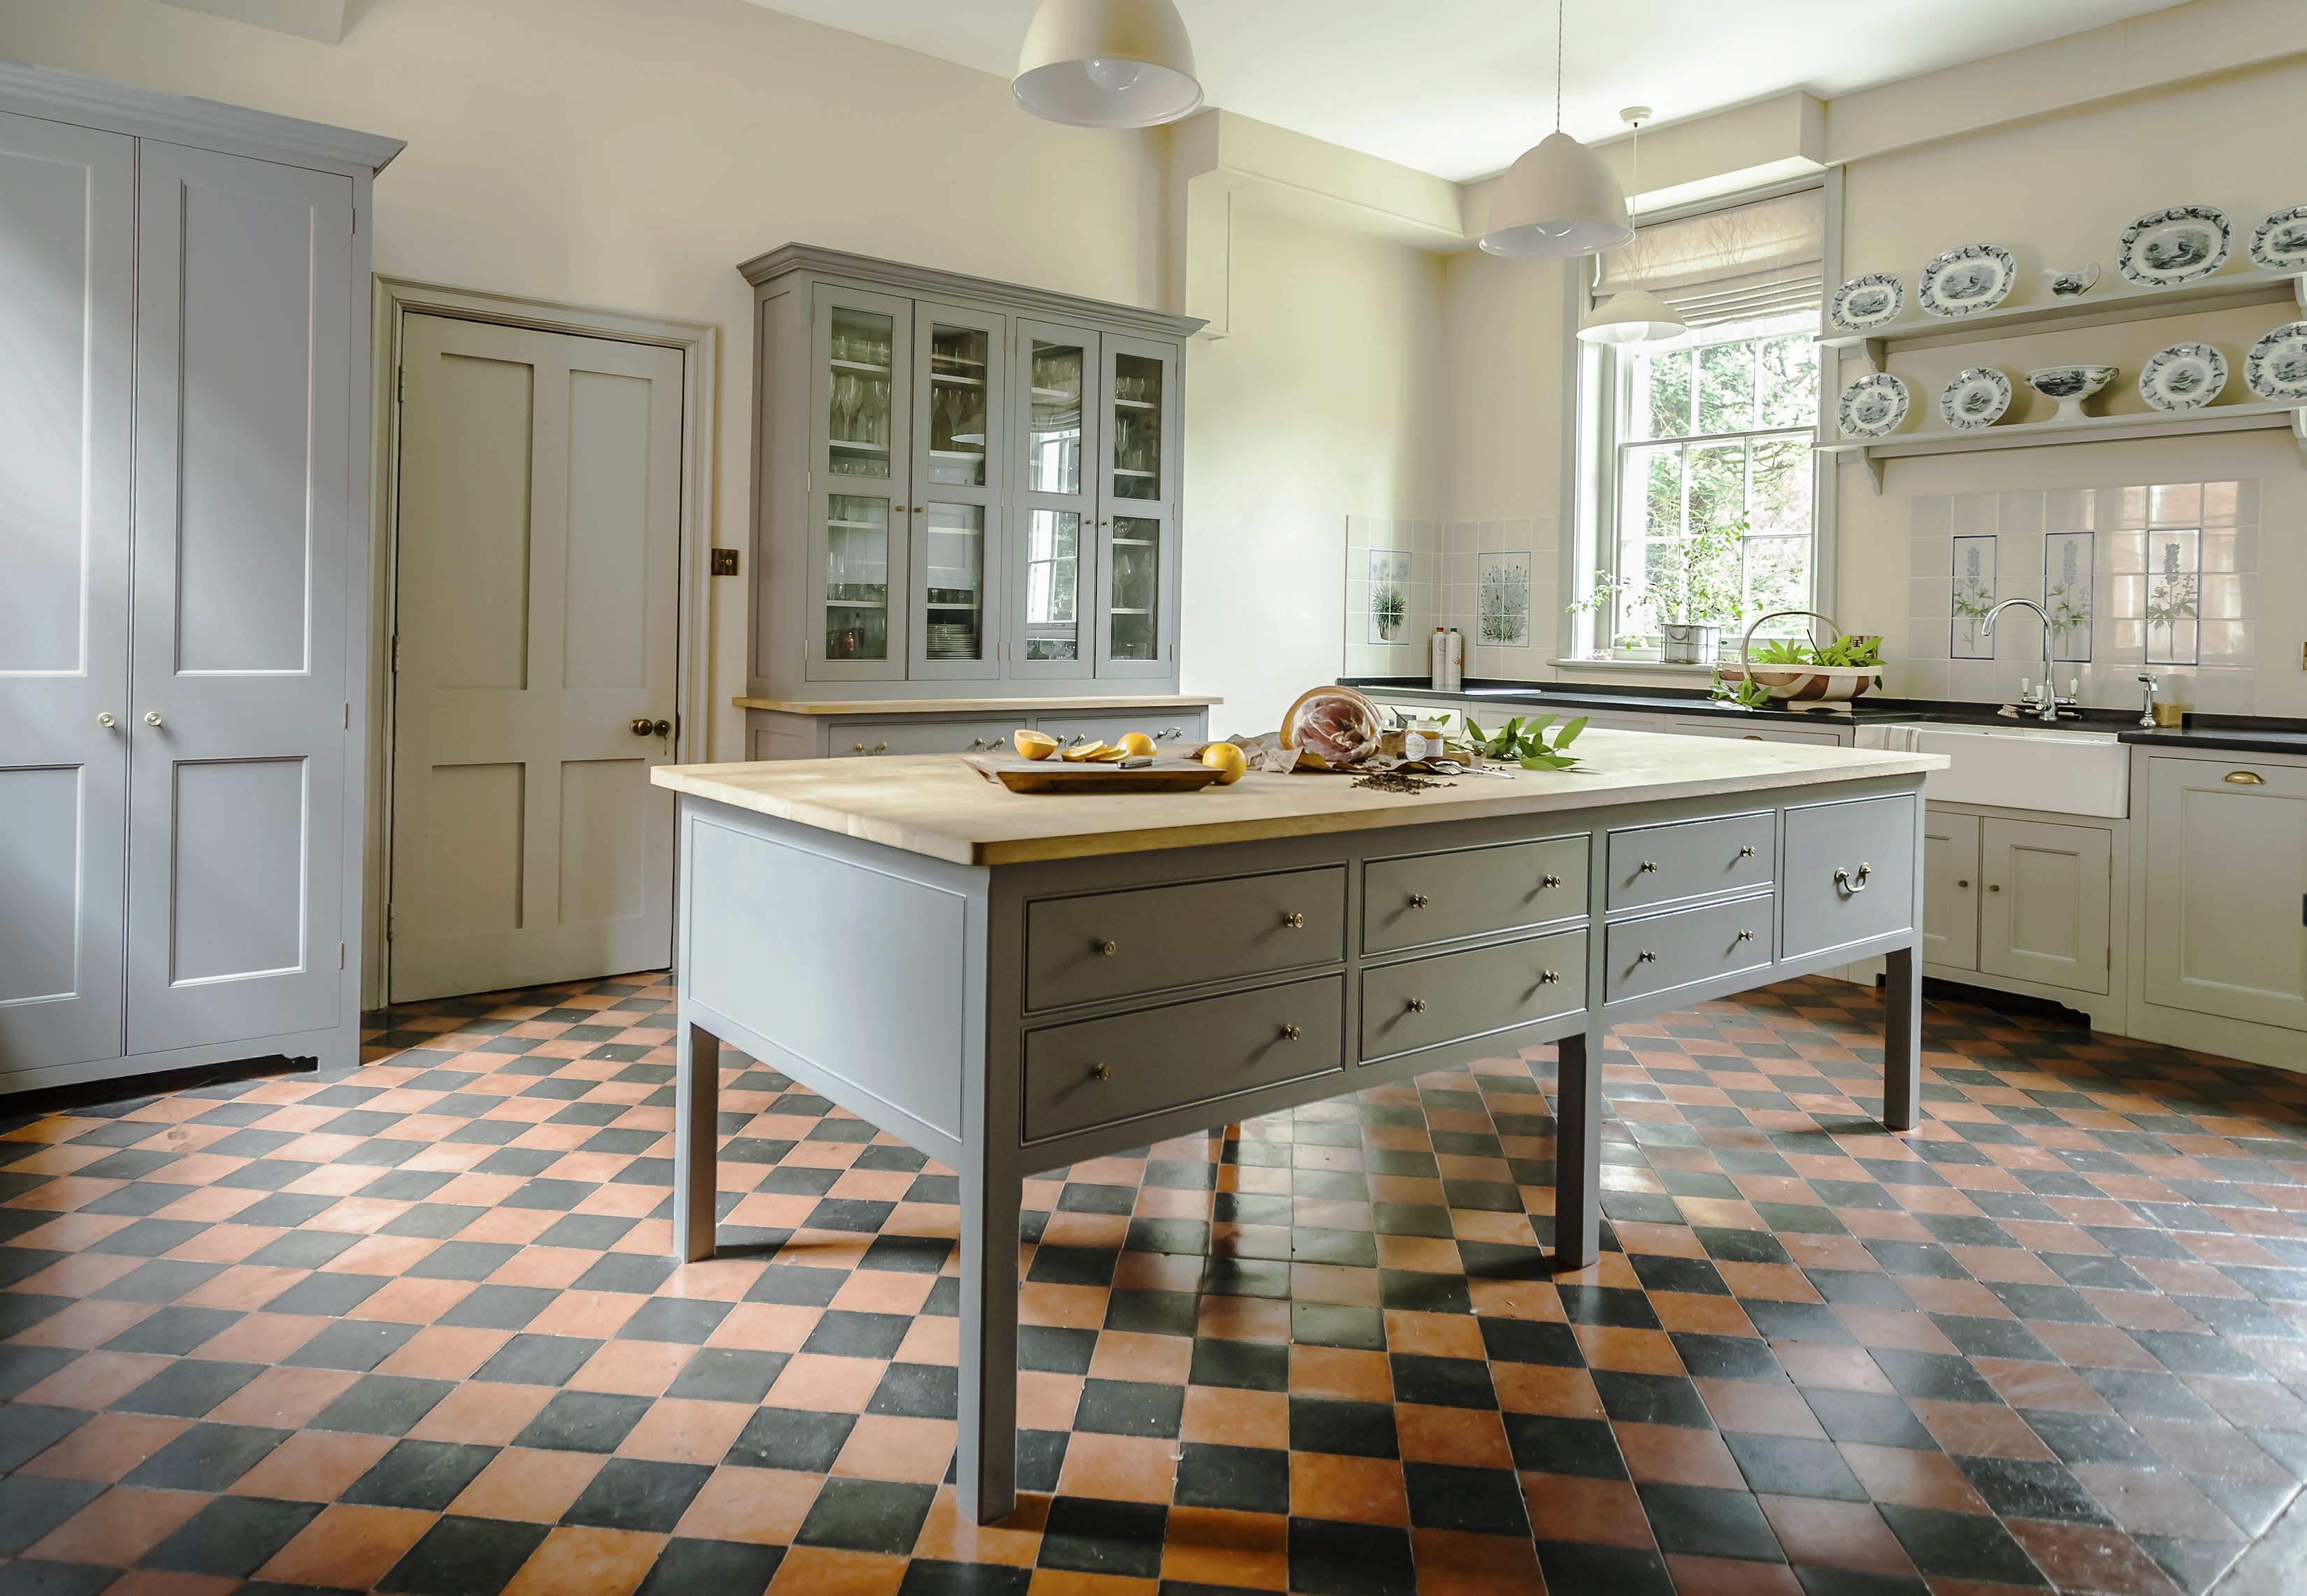 Georgian Kitchens: Get The Look on Modern Country Style